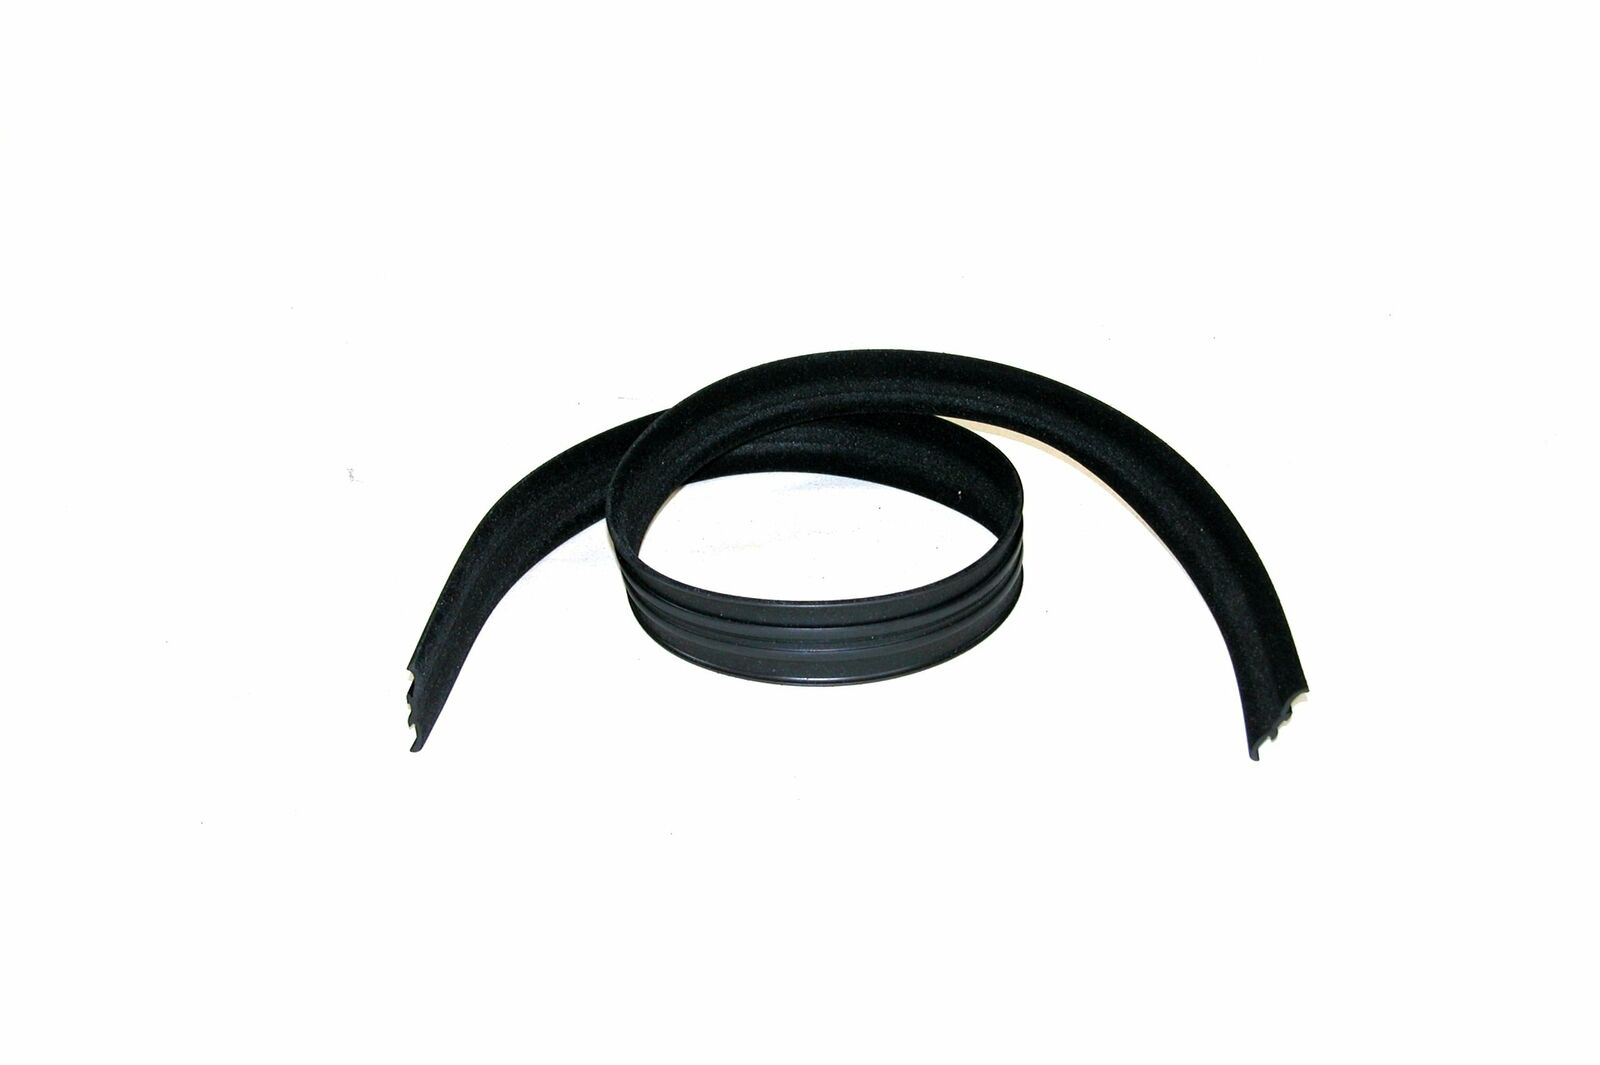 B-VAN DOOR GLASS DIVISION CHANNEL WEATHERSTRIP - PAIR